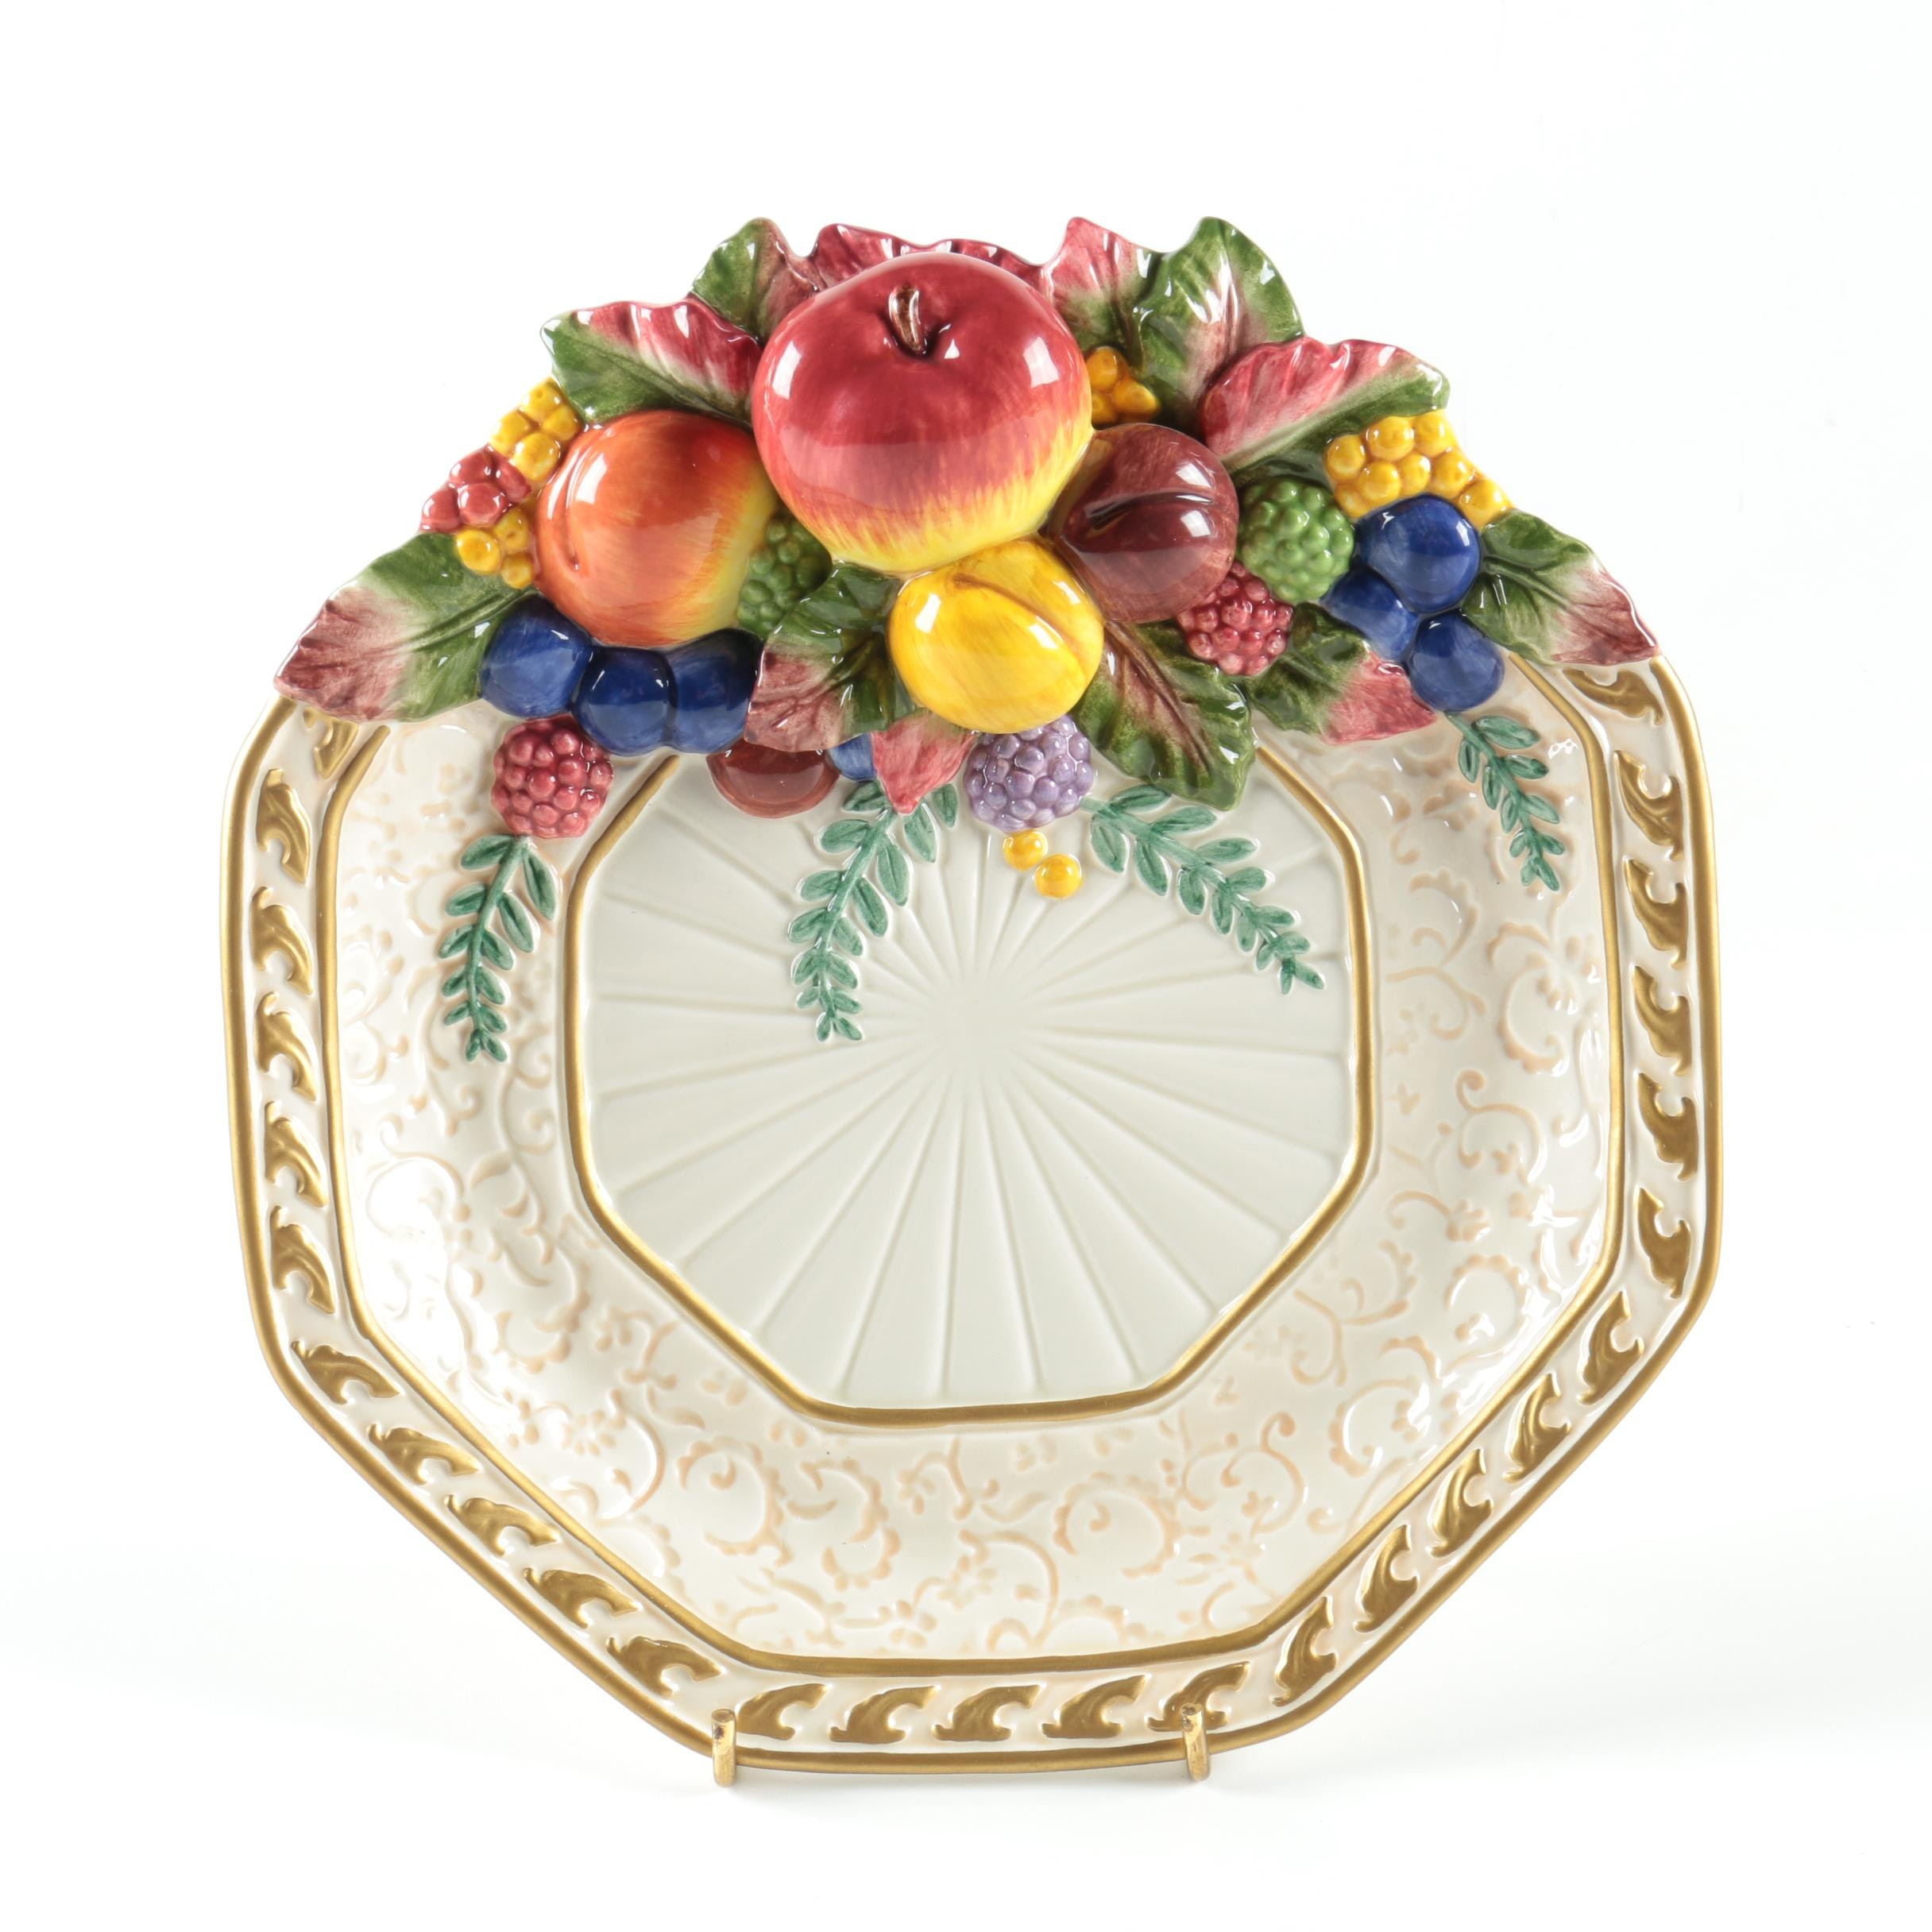 Fitz and Floyd Decorative Fruit Plate